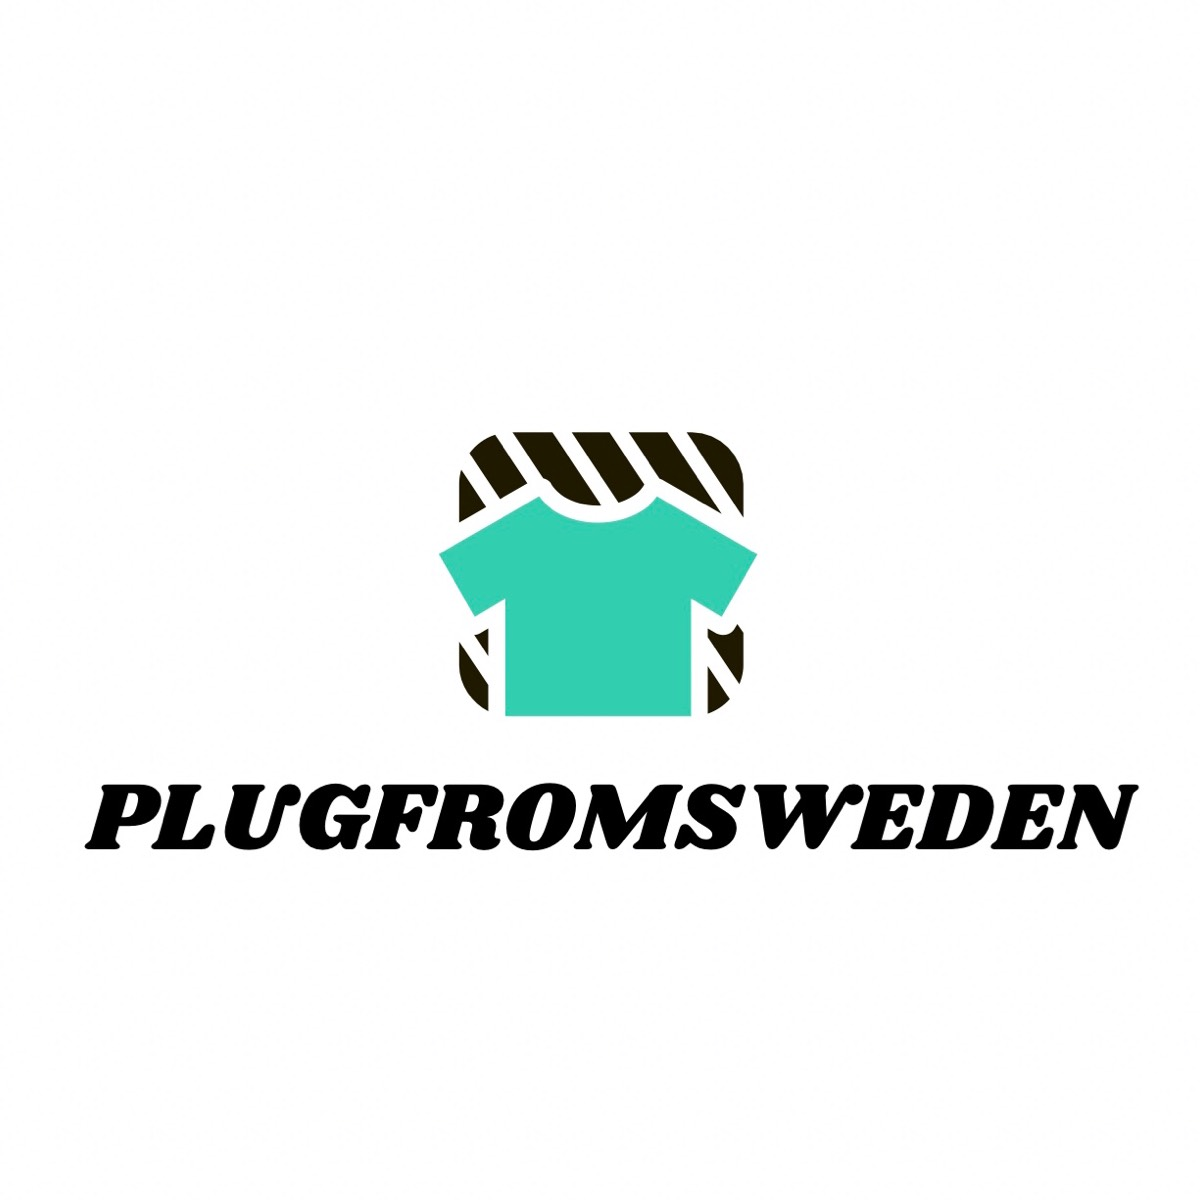 Bump profile picture for @plugfromsweden